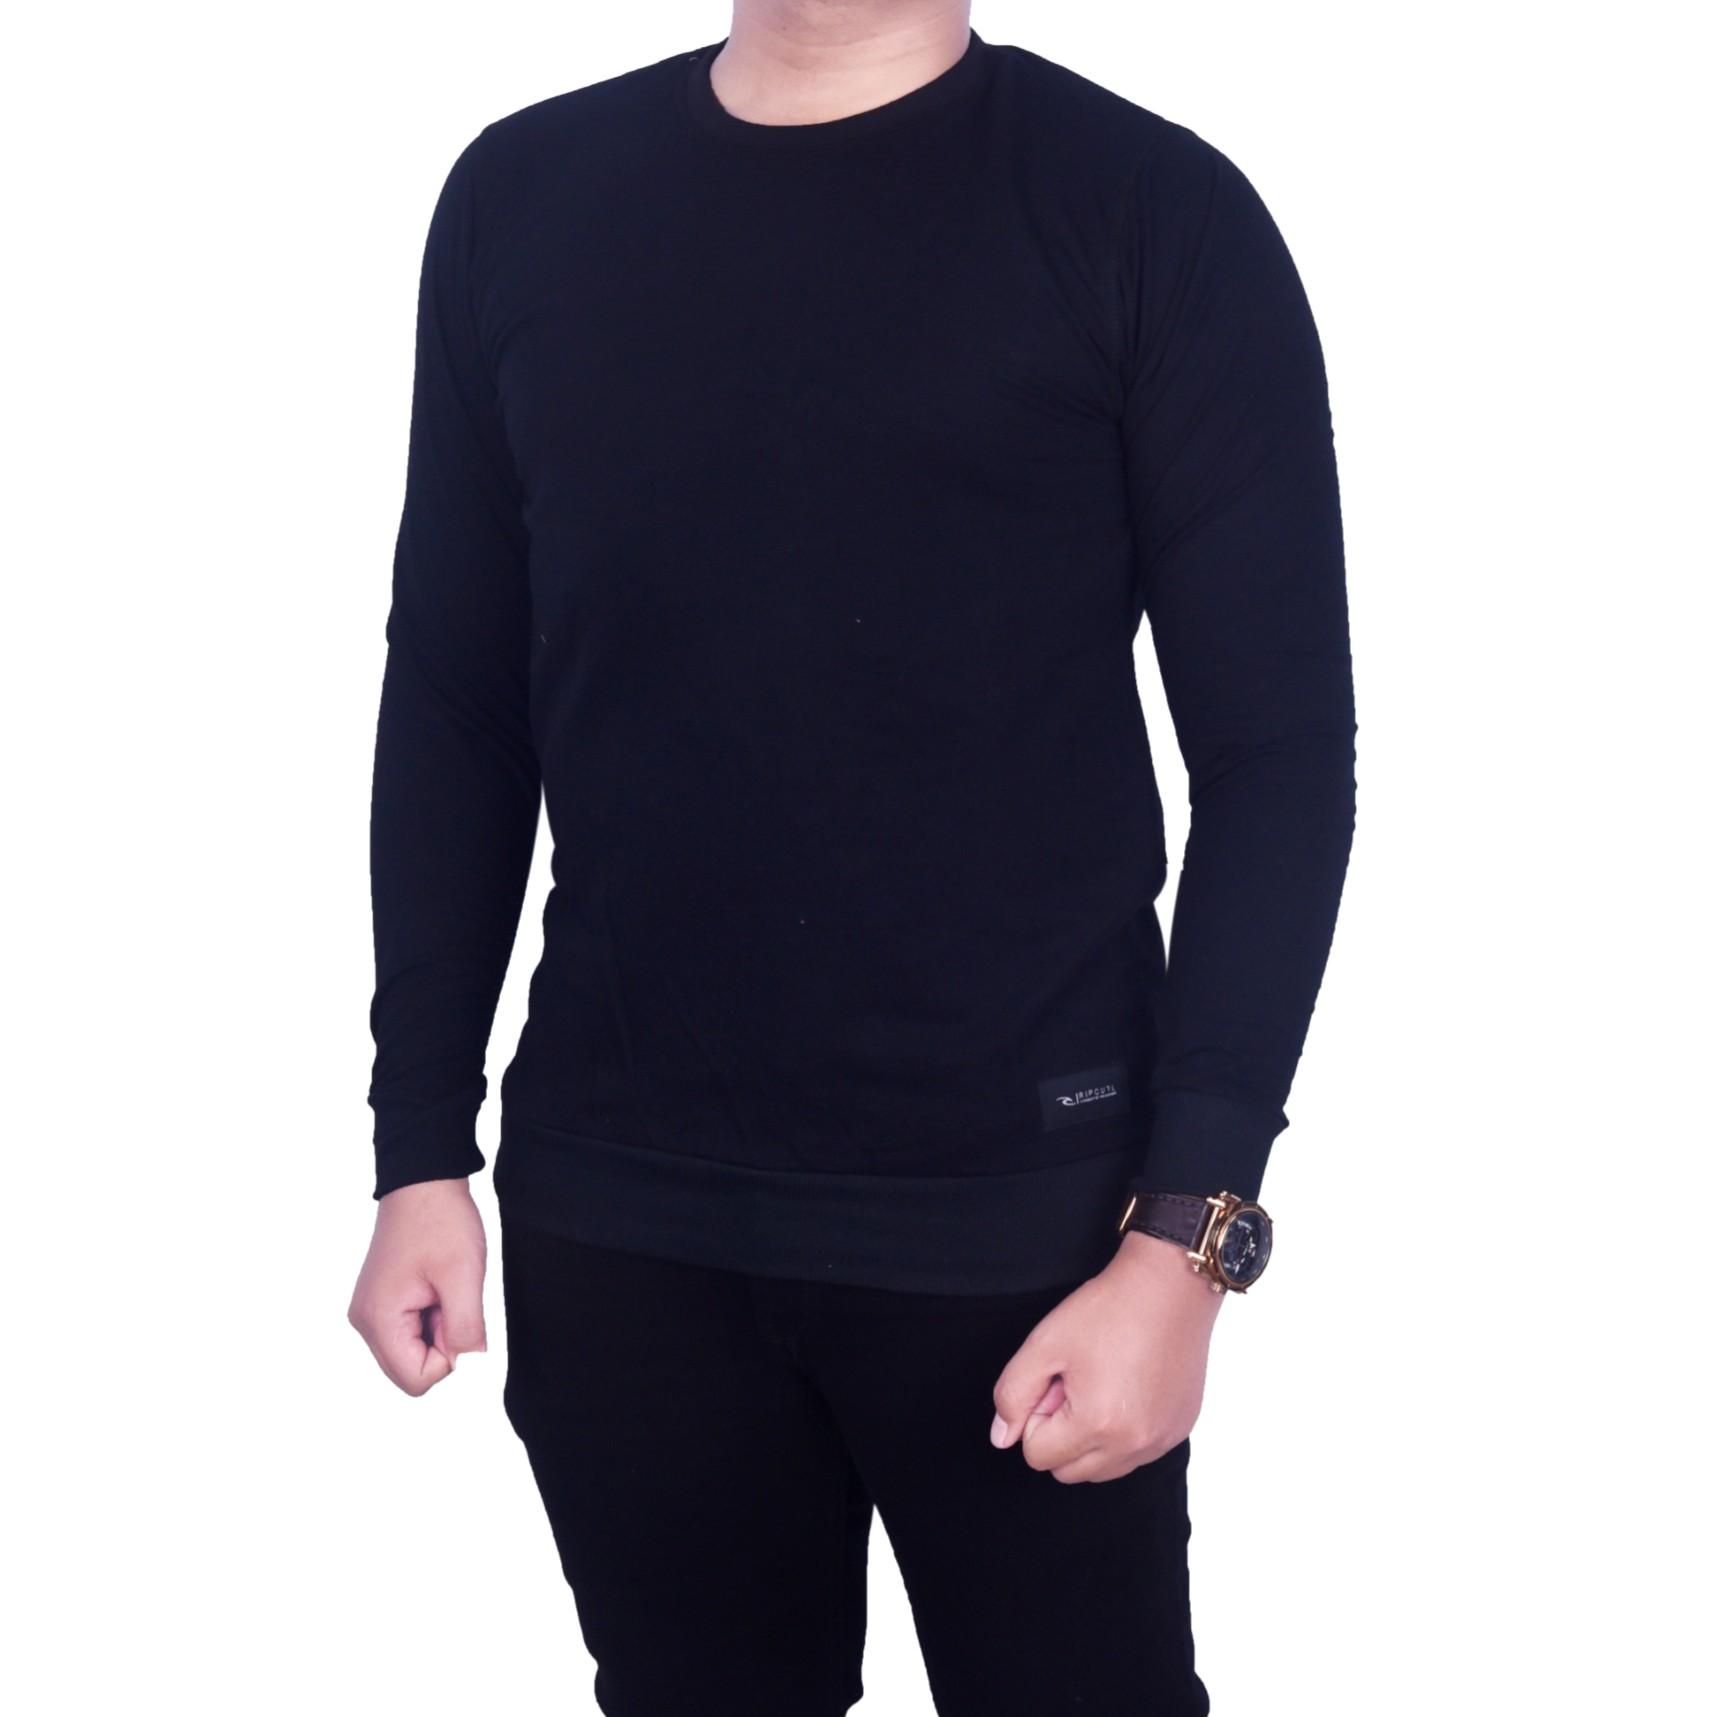 dgm fashion1 Sweater Hitam Polos Distro Murah Sweater Unisex Sweater Man  Casual Sweater Pria 3b2f81e952